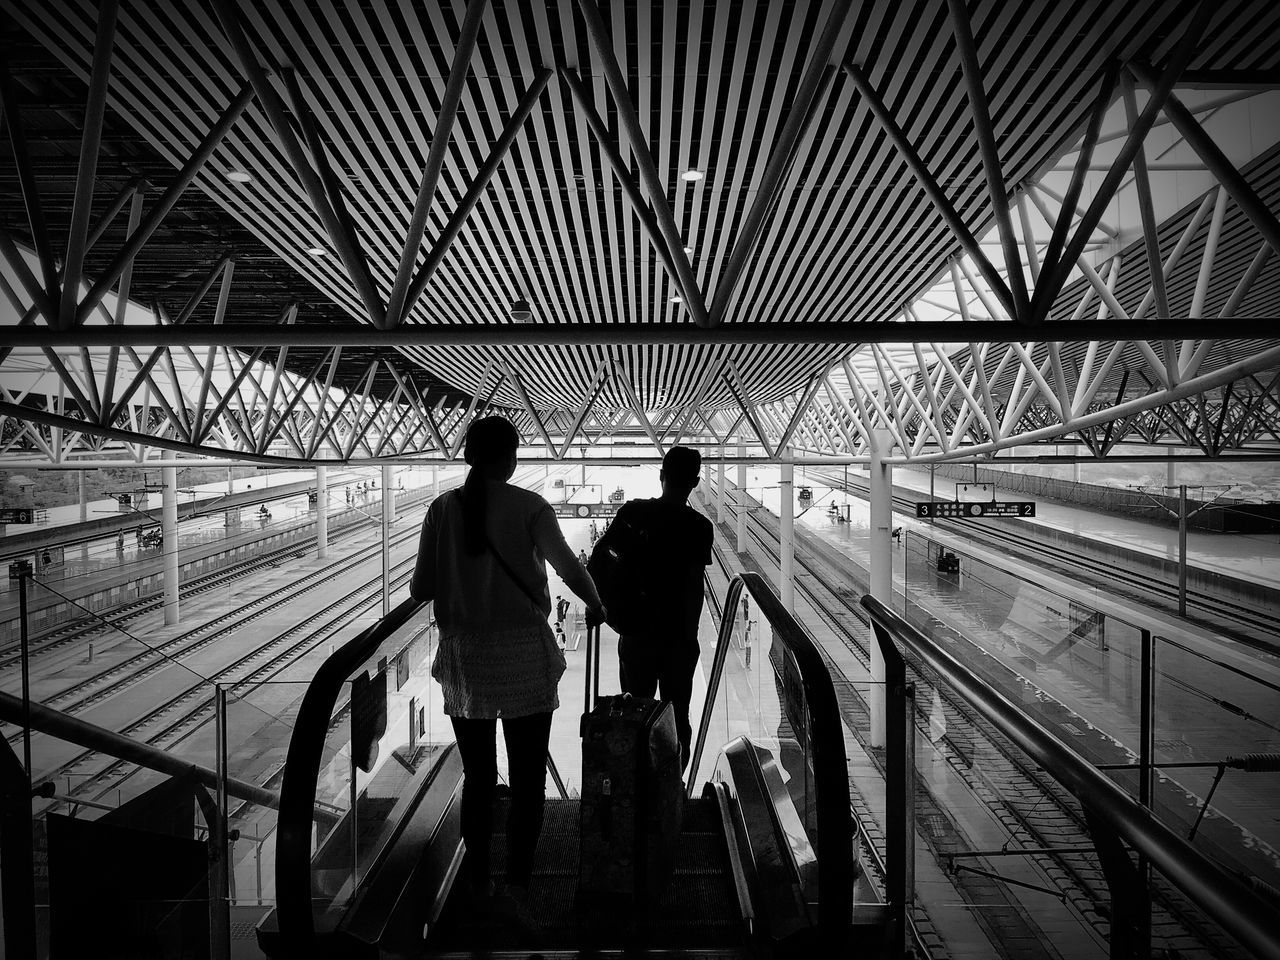 Time to say goodbye Urban Geometry Monochrome IPhoneography Architecture Blackandwhite Black And White Black & White People Silhouette On The Road